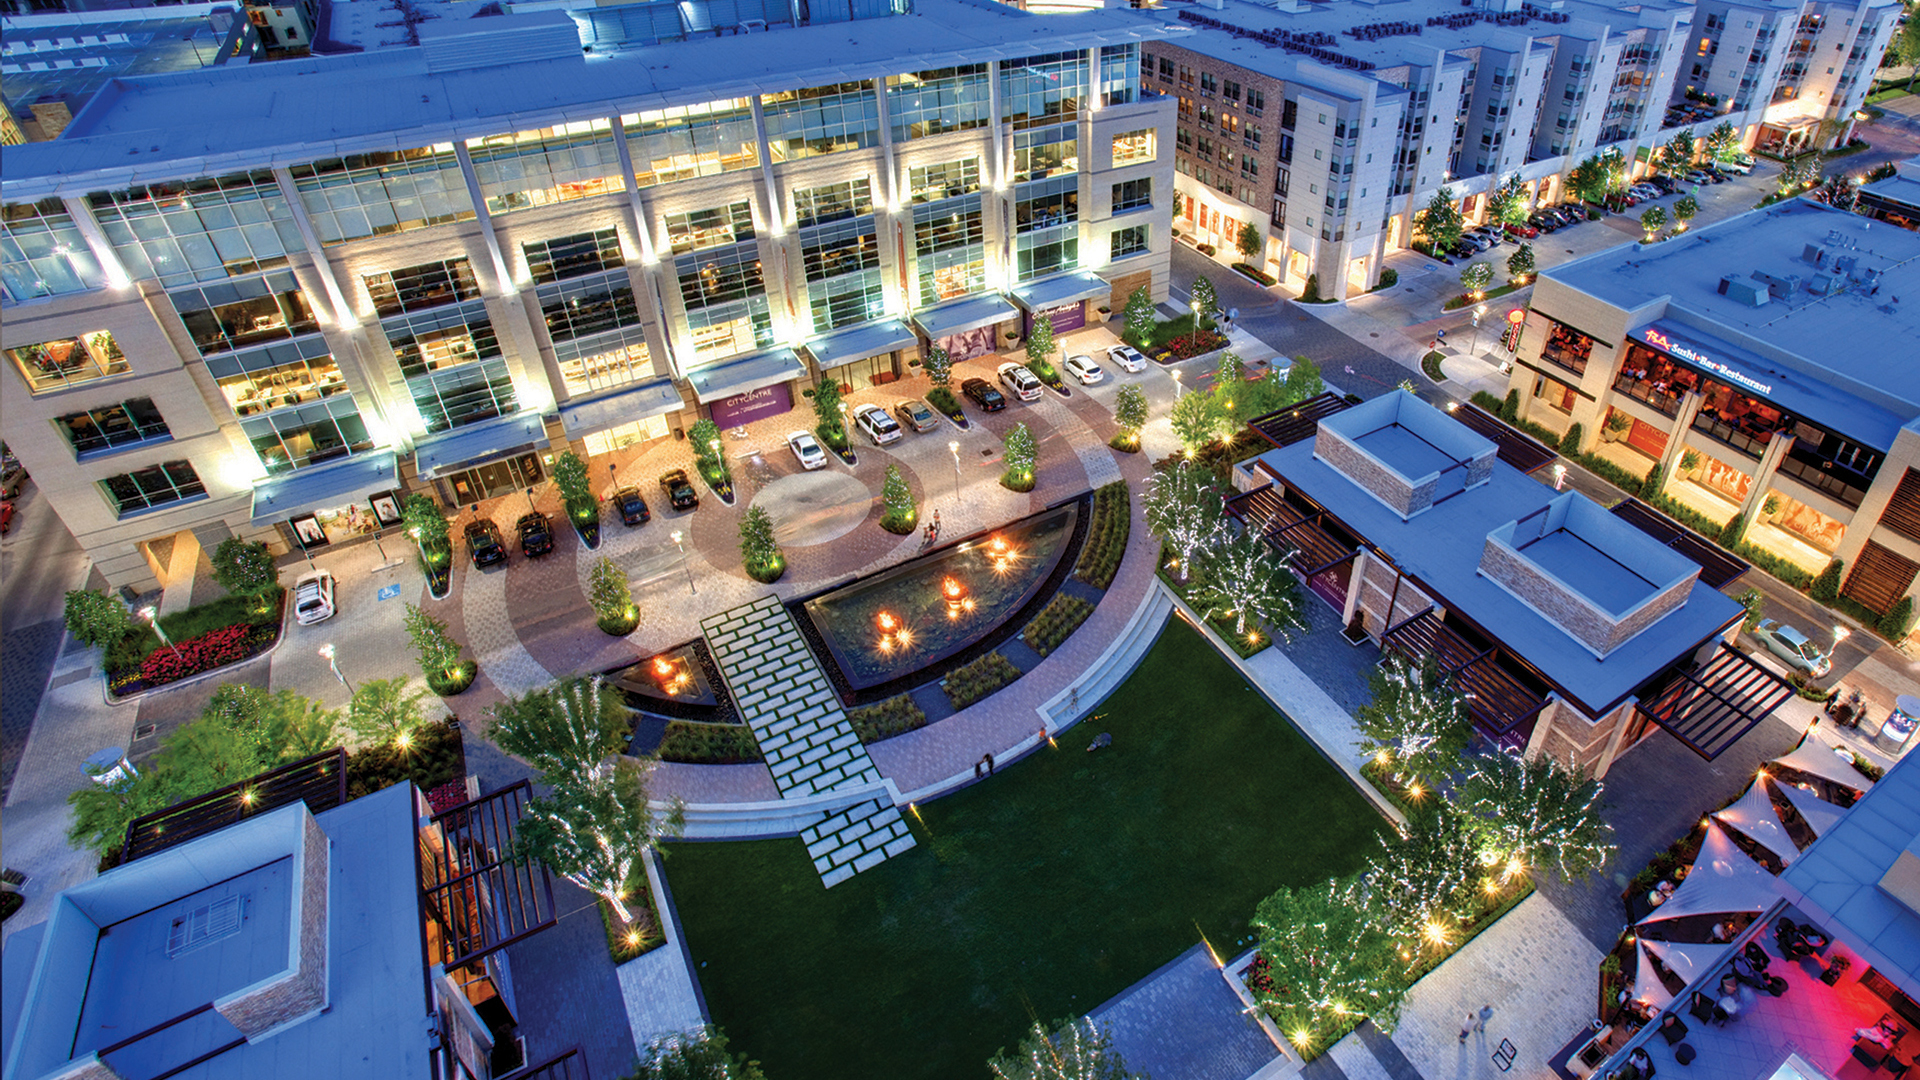 City Centre-Top Place to Shop in Houston